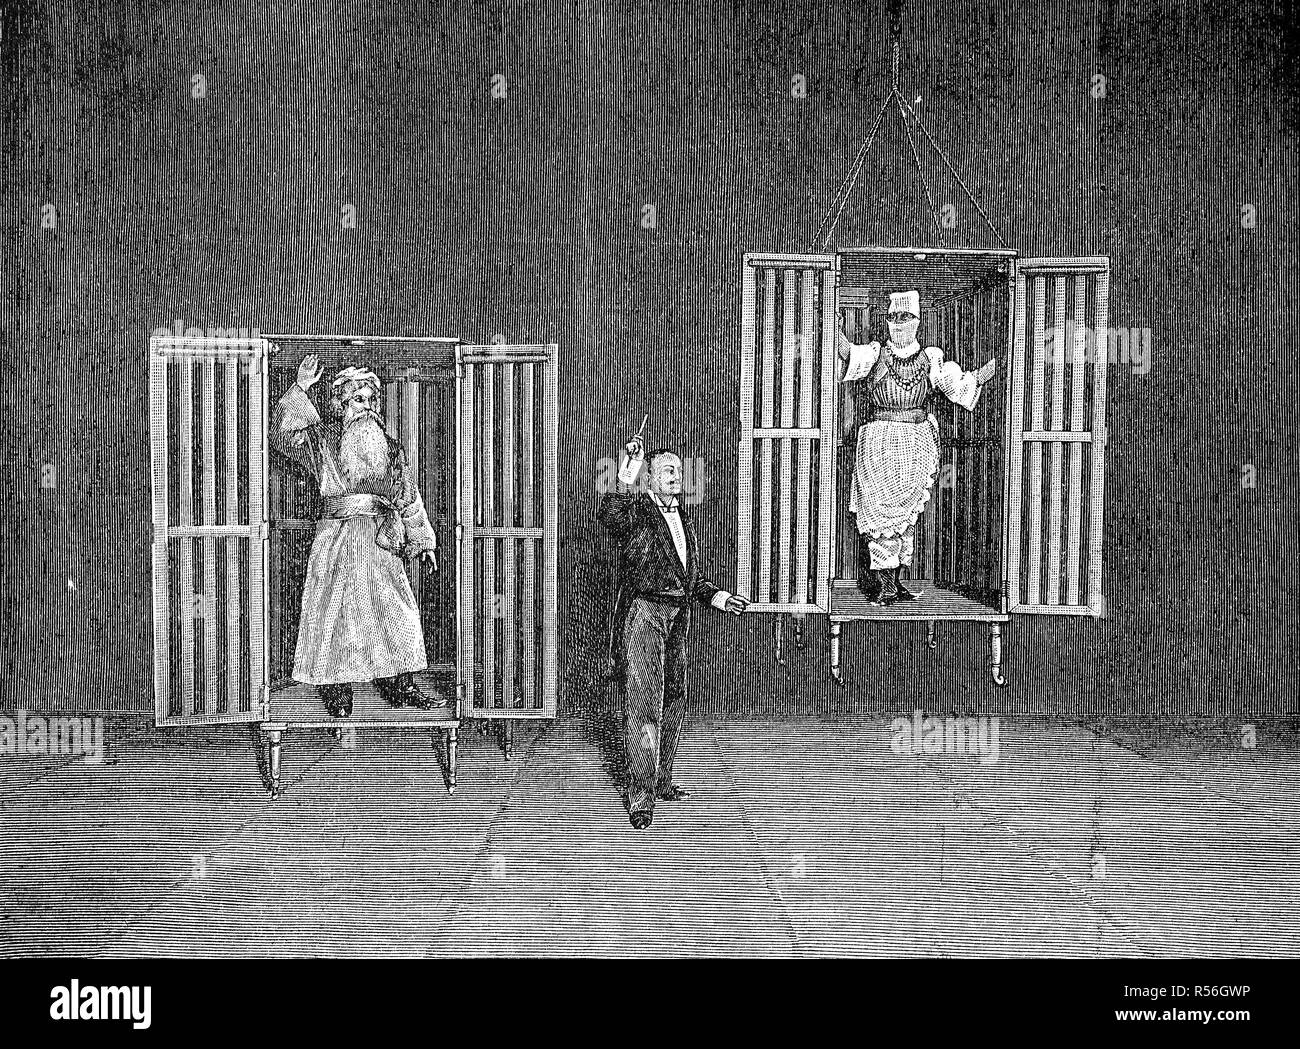 The illusionist Thorn demonstrates the appearance and disappearance of persons in cages, 1880, woodcut, England - Stock Image